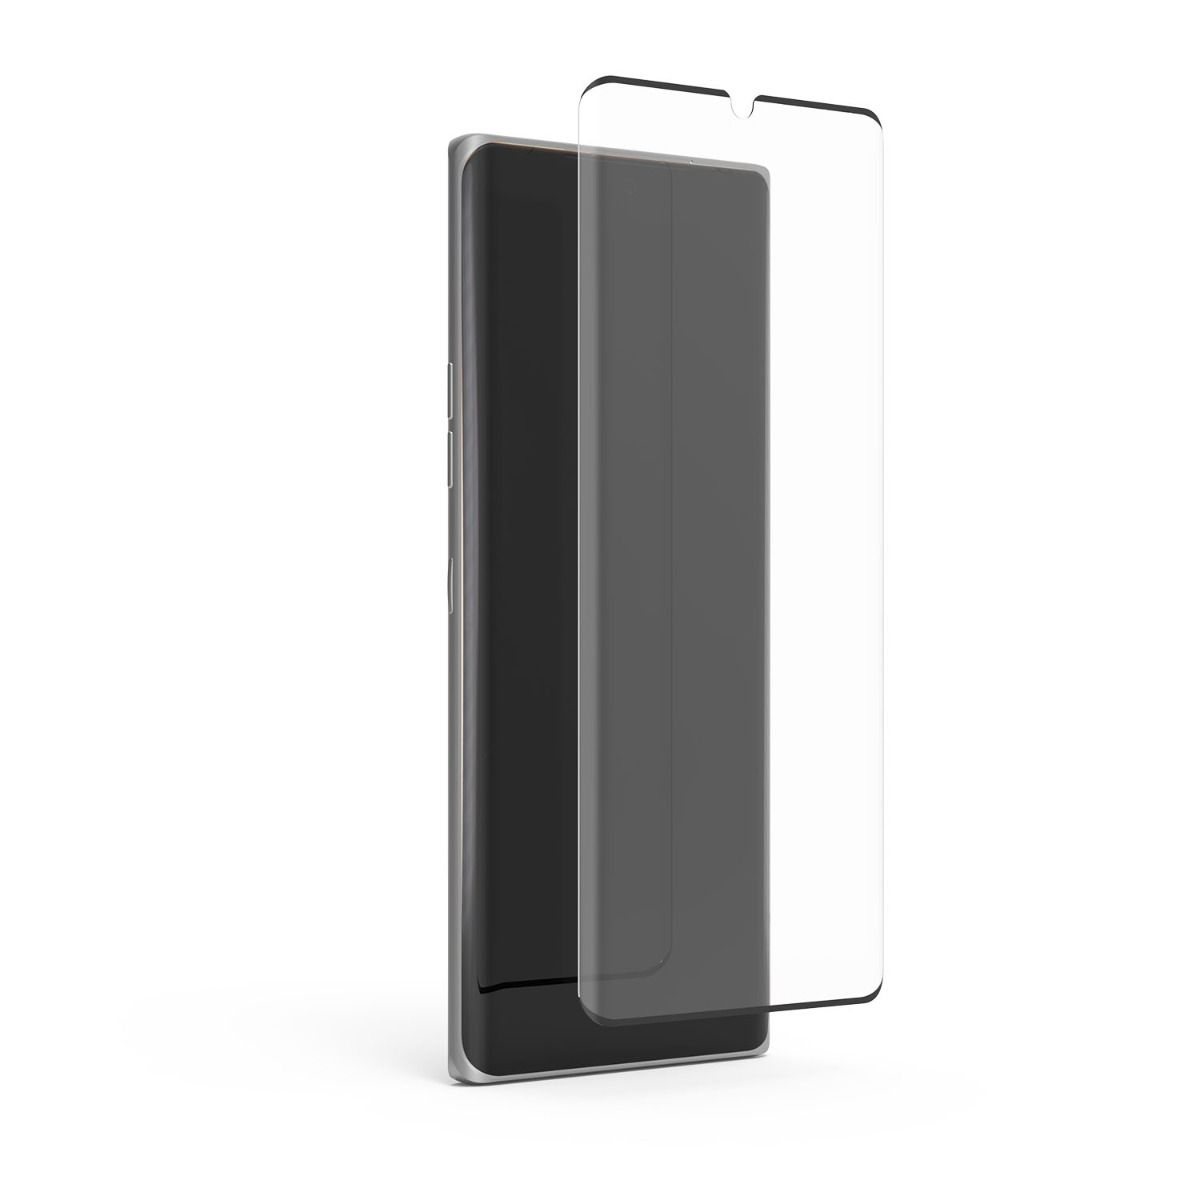 LG Velvet 5G Steel 360 Curved Glass Screen Protector with Black Borders, Alignment Tray and Pure Pledge up to $100